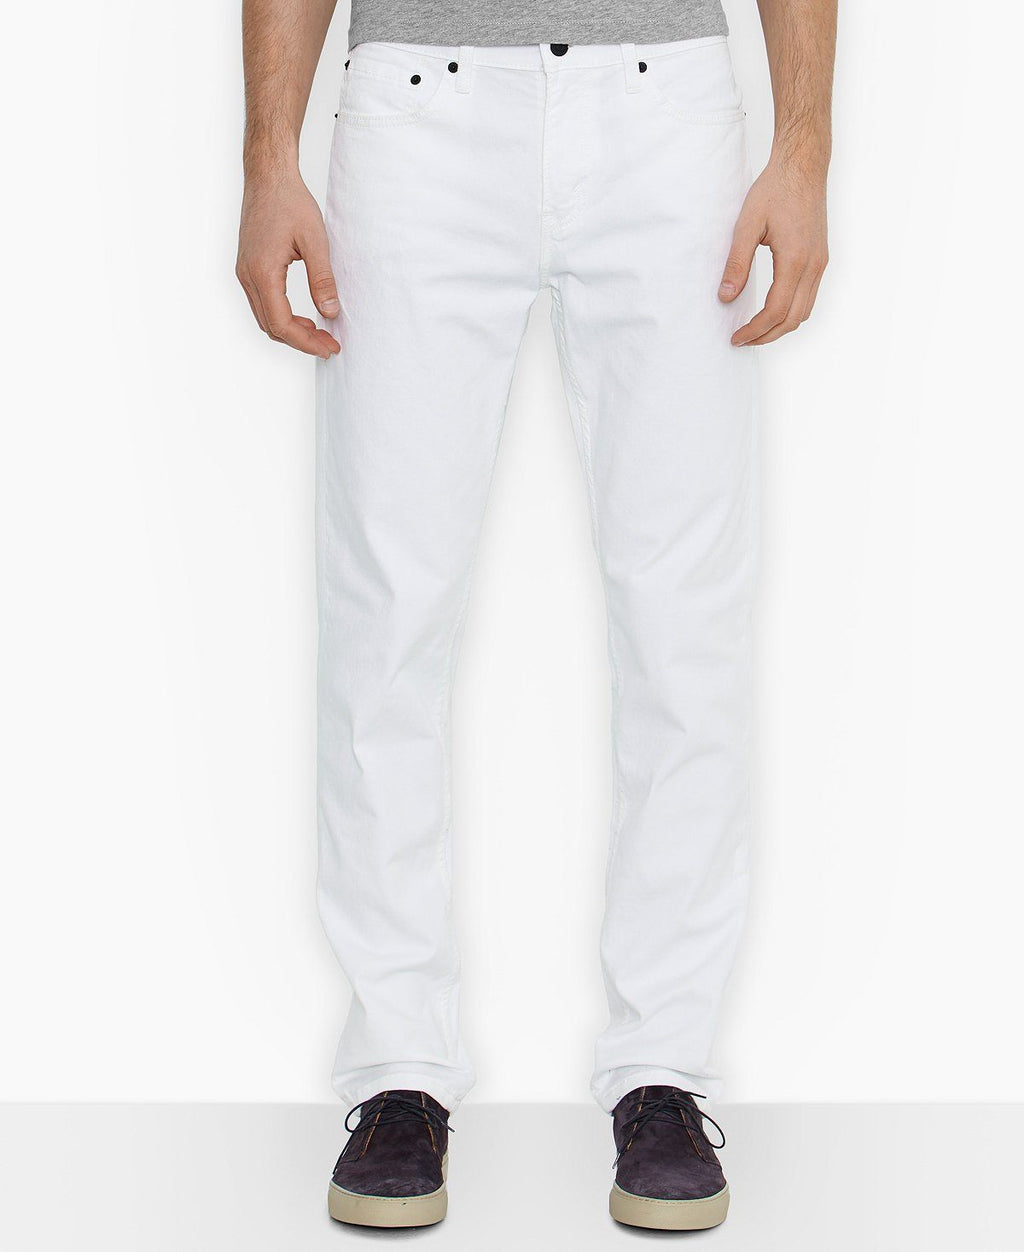 Levi's 511 Slim Fit Jeans, White Bull